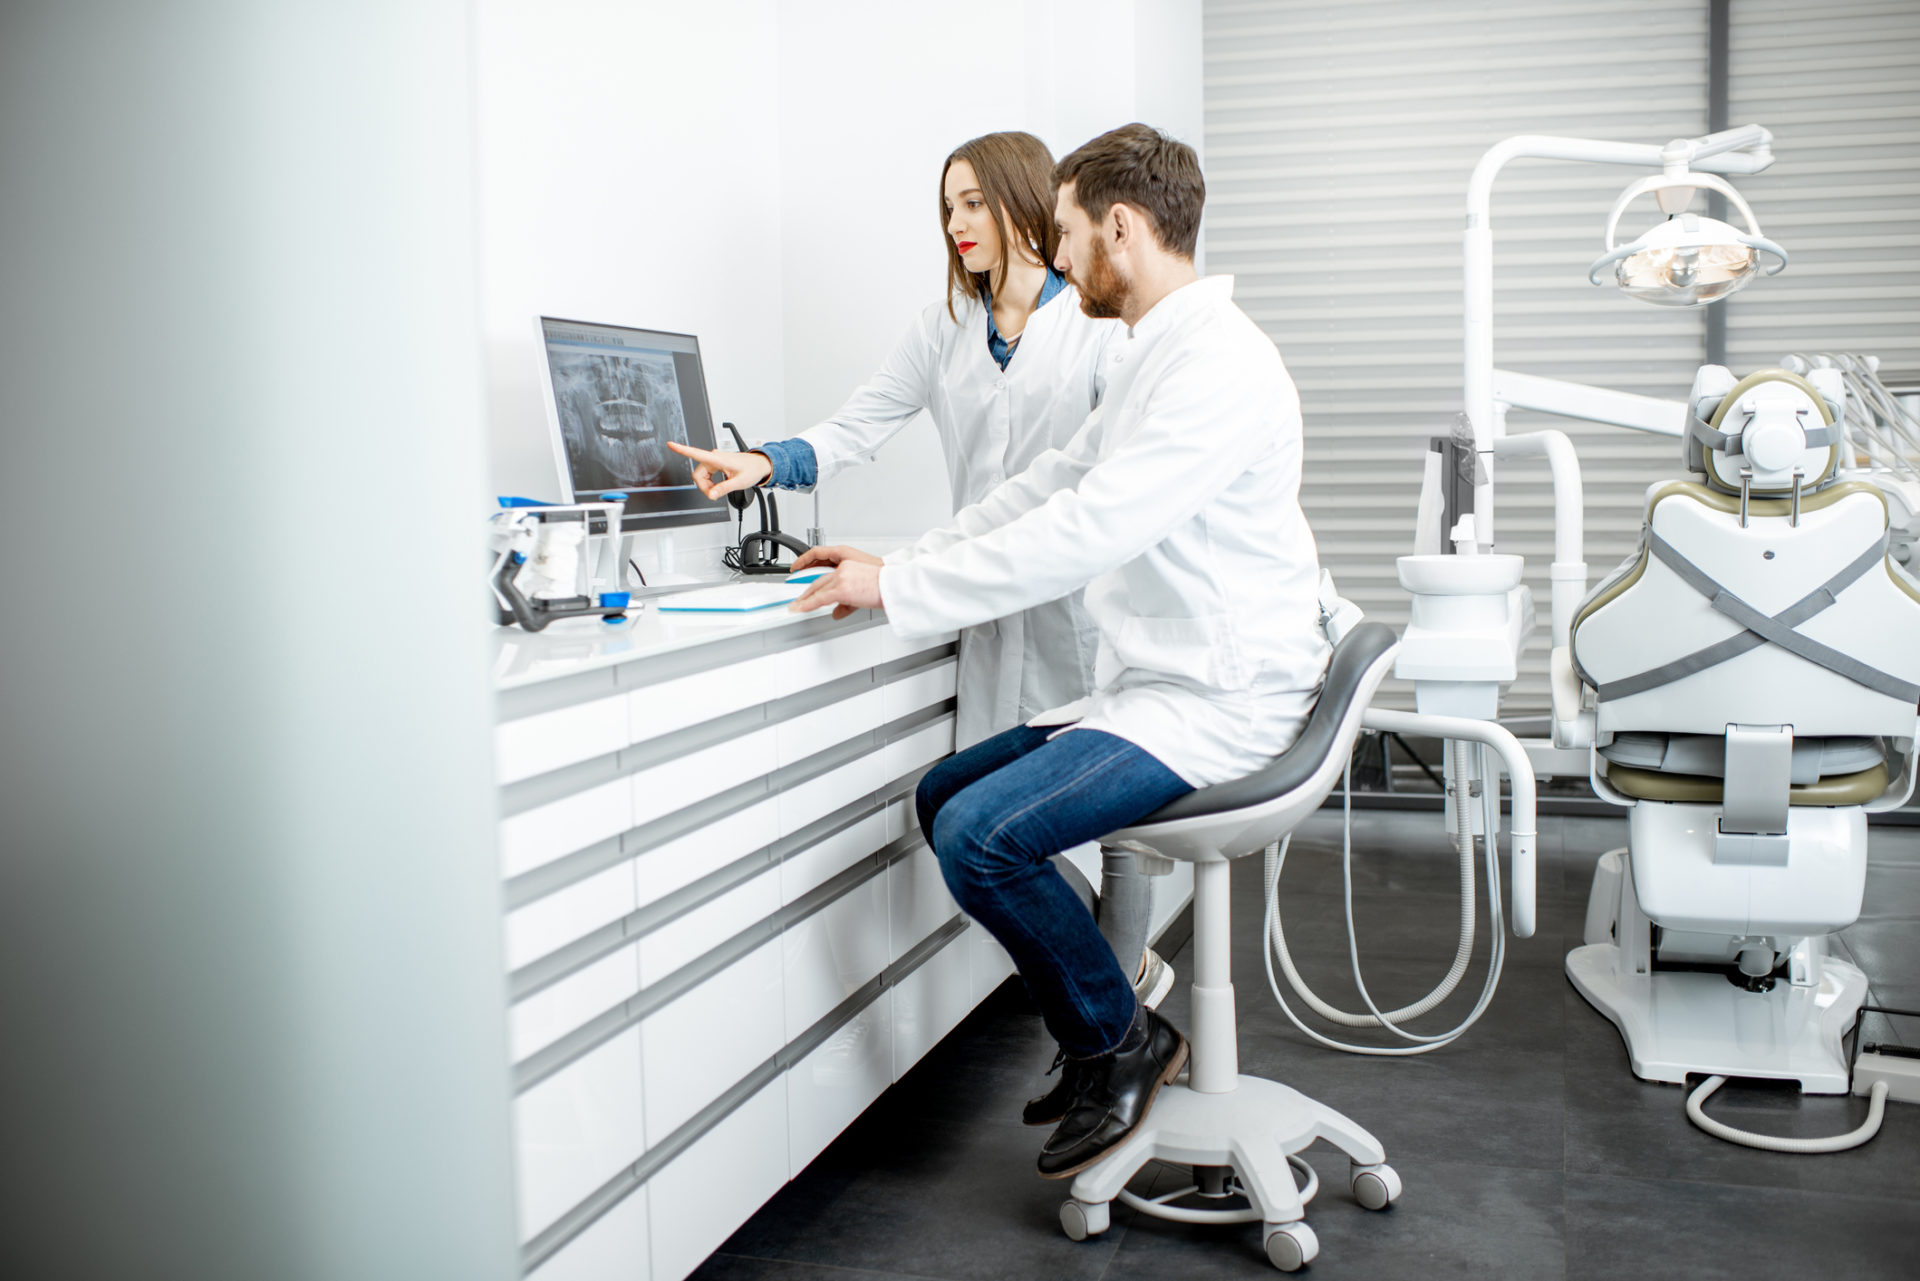 Dental Practice Working With Dental IT Services Company In The Metro Washington DC Area